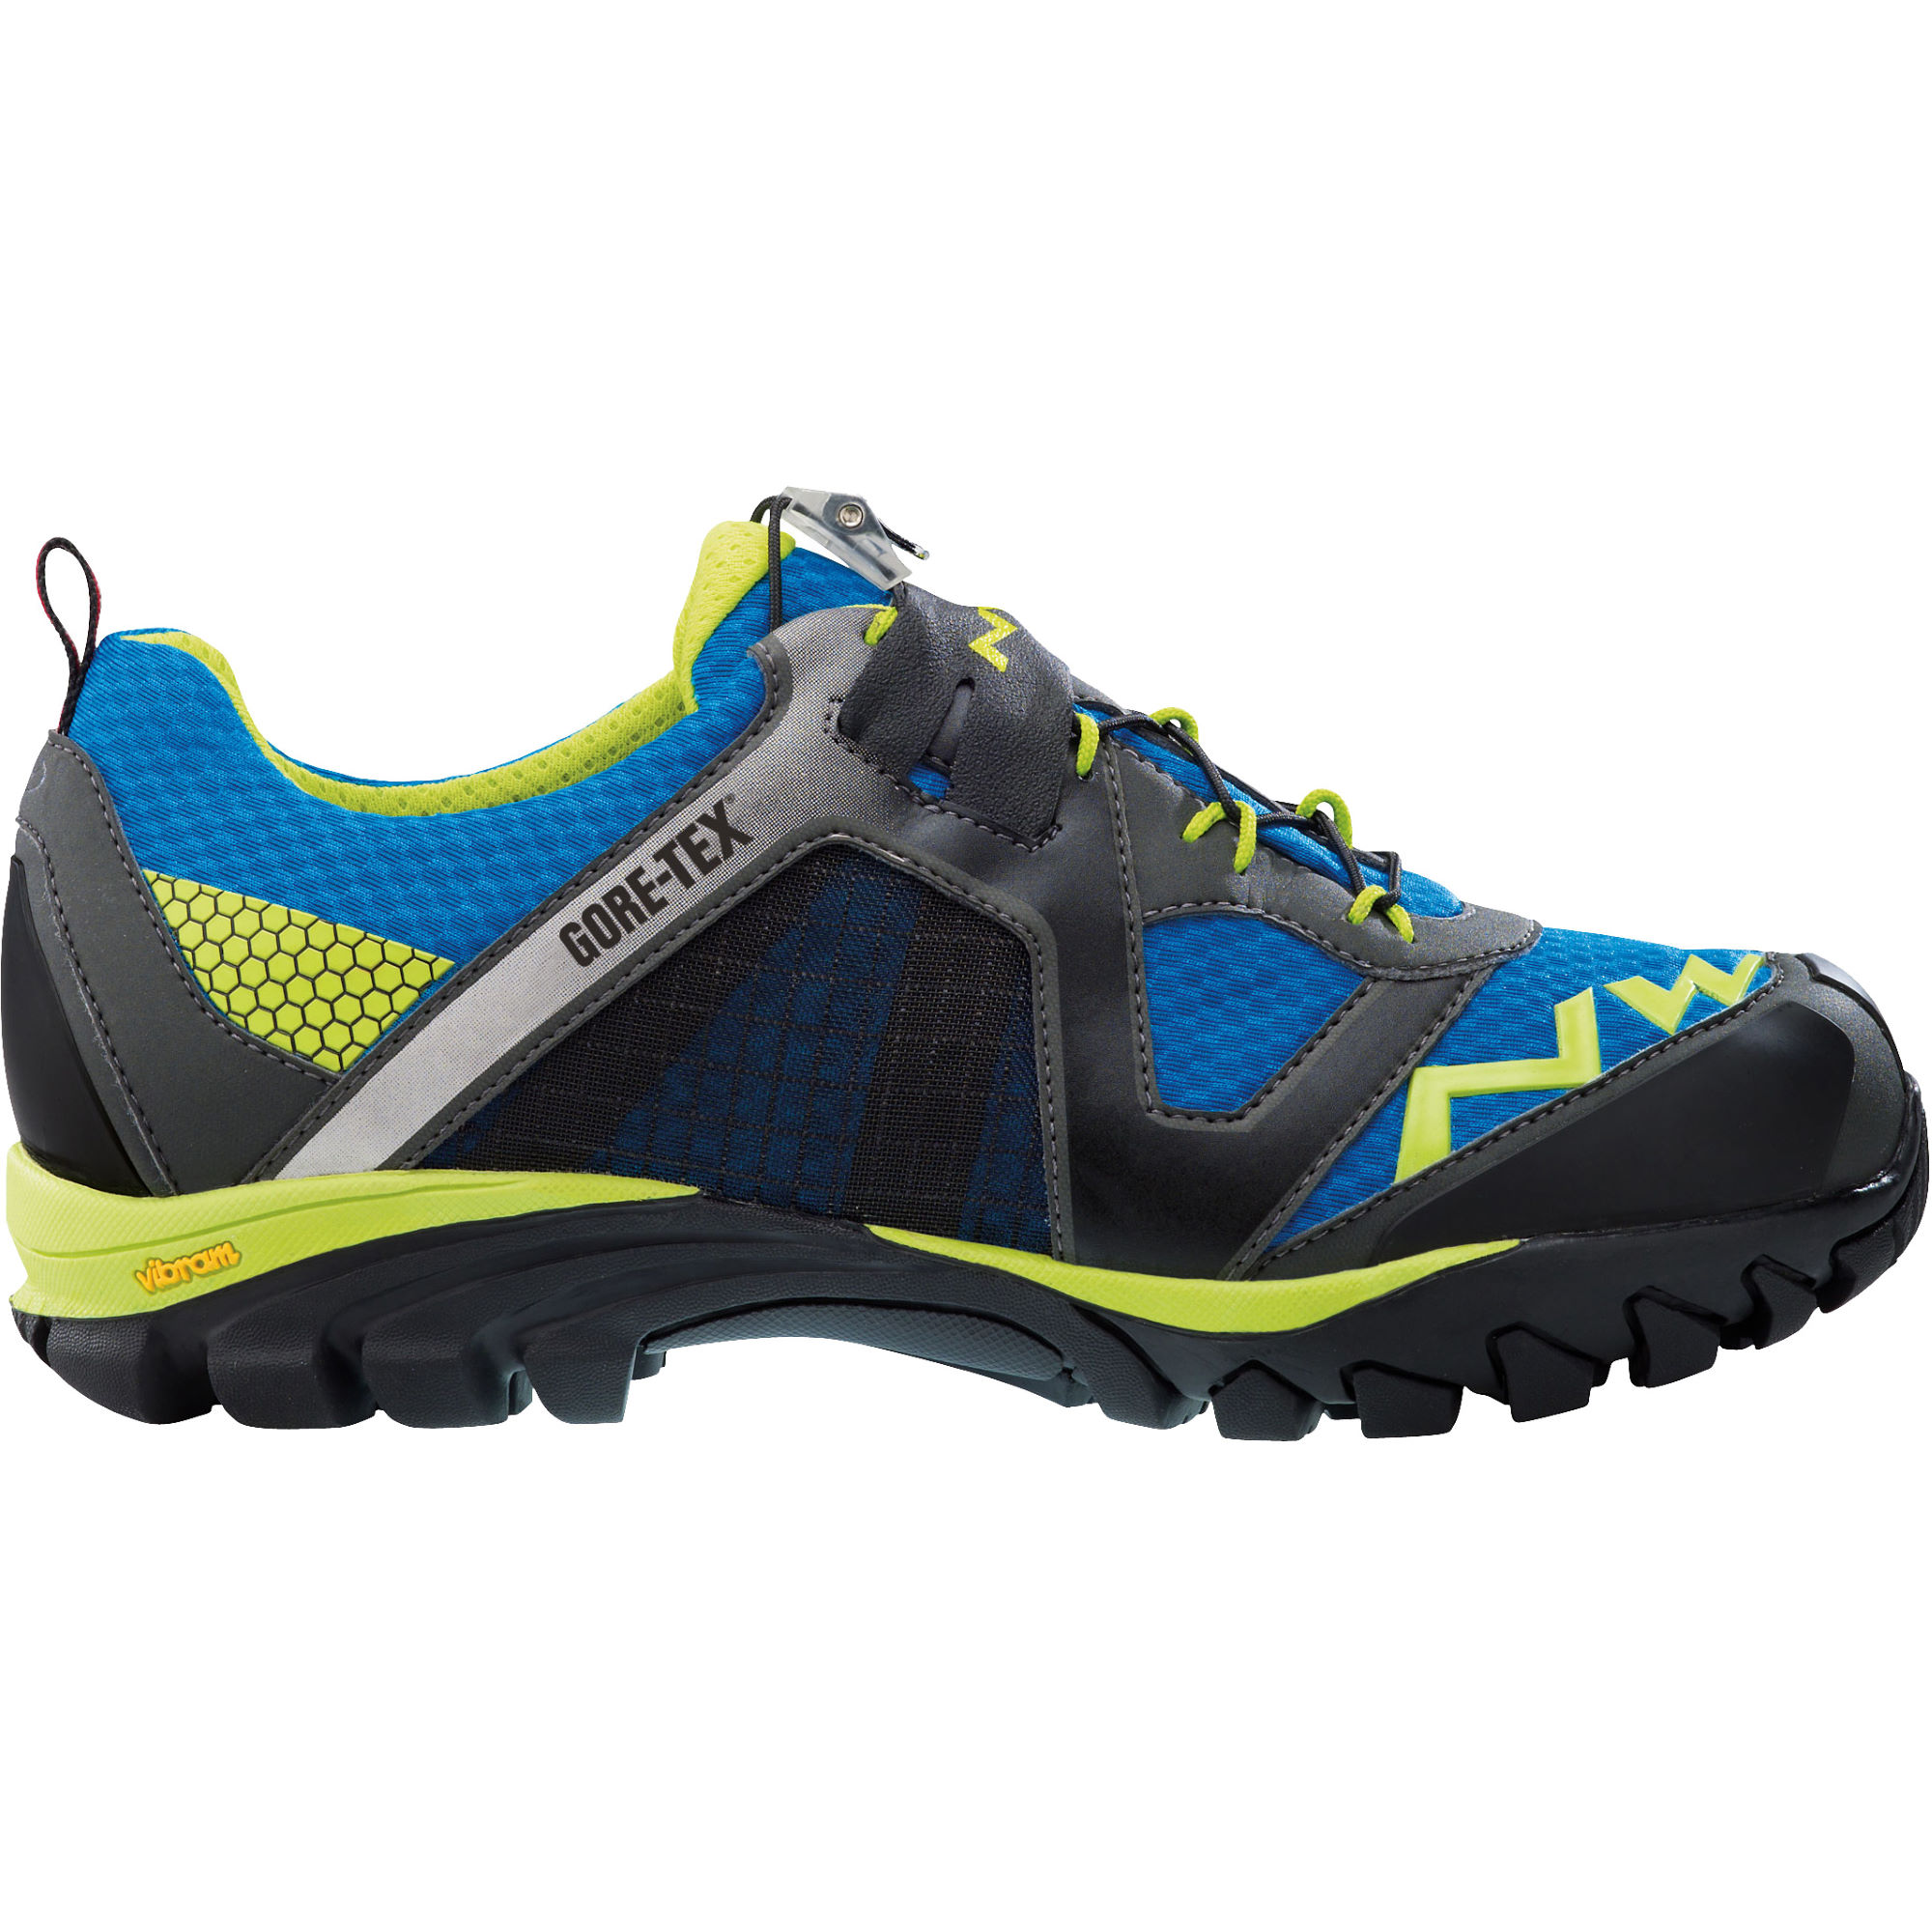 Nw Mountain Bike Shoe Flat